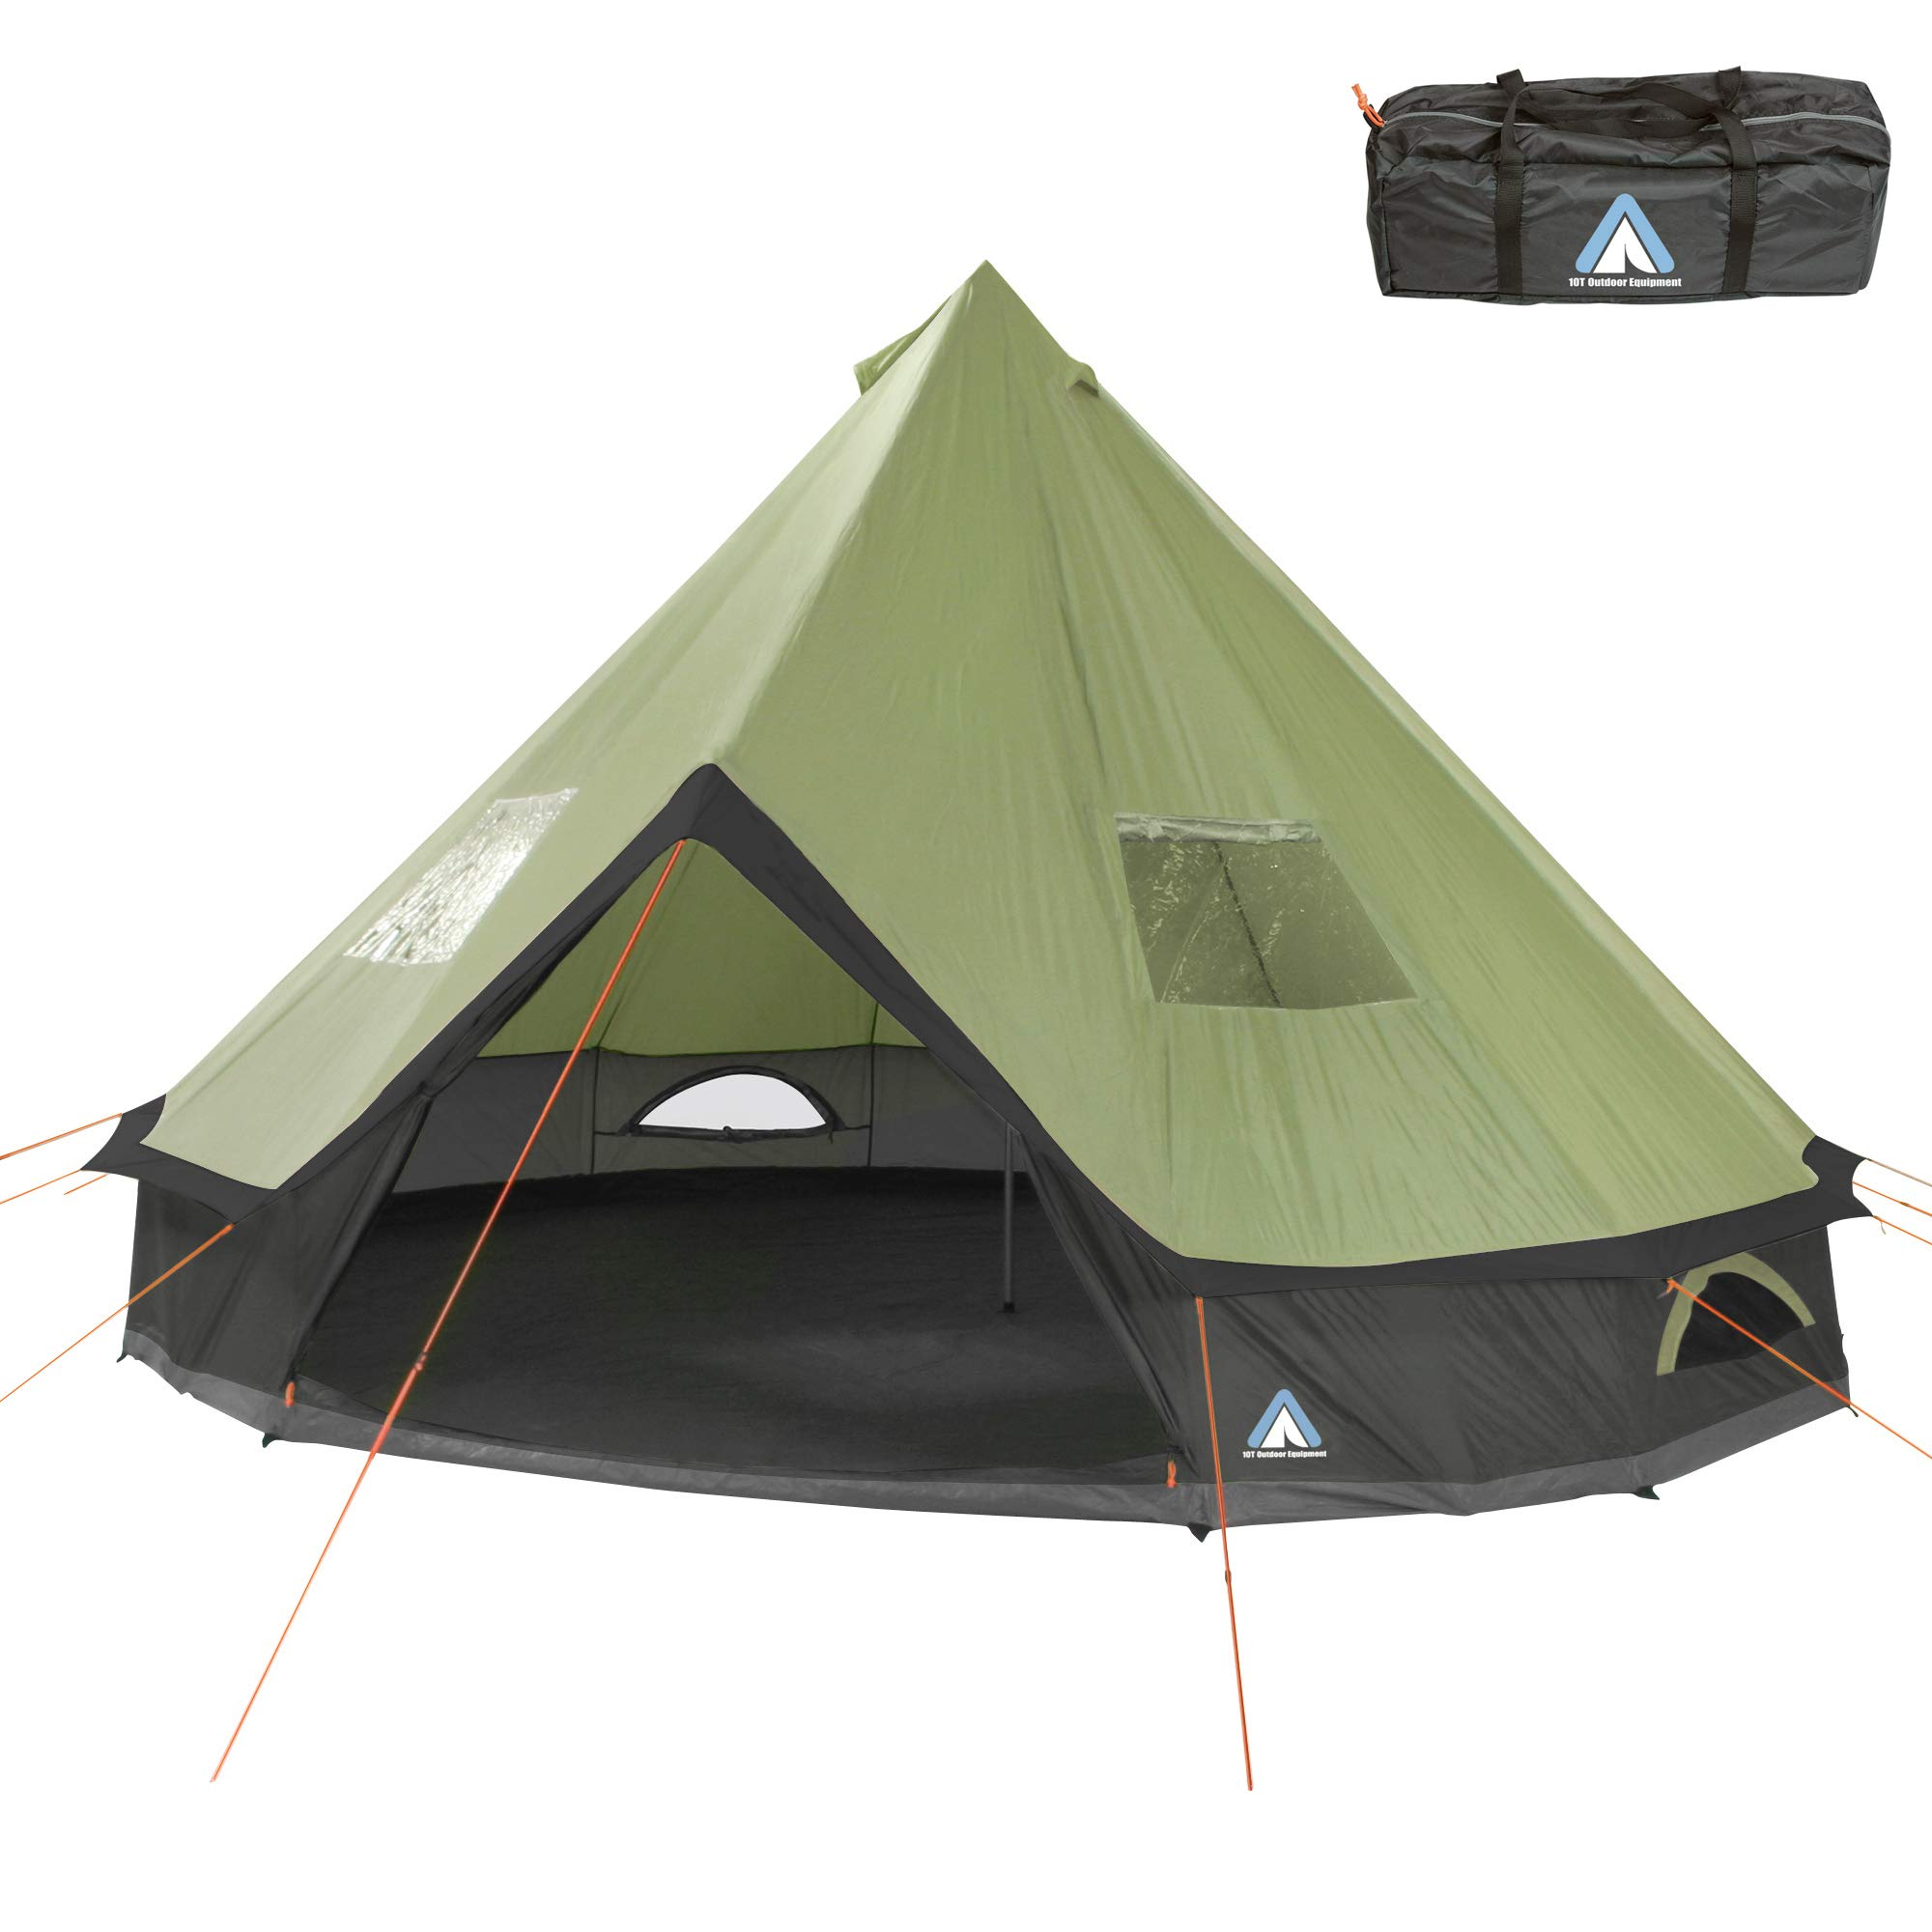 promo code bdea7 0c03c 10T Outdoor Equipment Unisex - Adult Camping Tent Mojave 500 Beechnut XXL  Teepee Tent Waterproof 5-10 Man Round Tent Indian Tent Diameter 5m Green